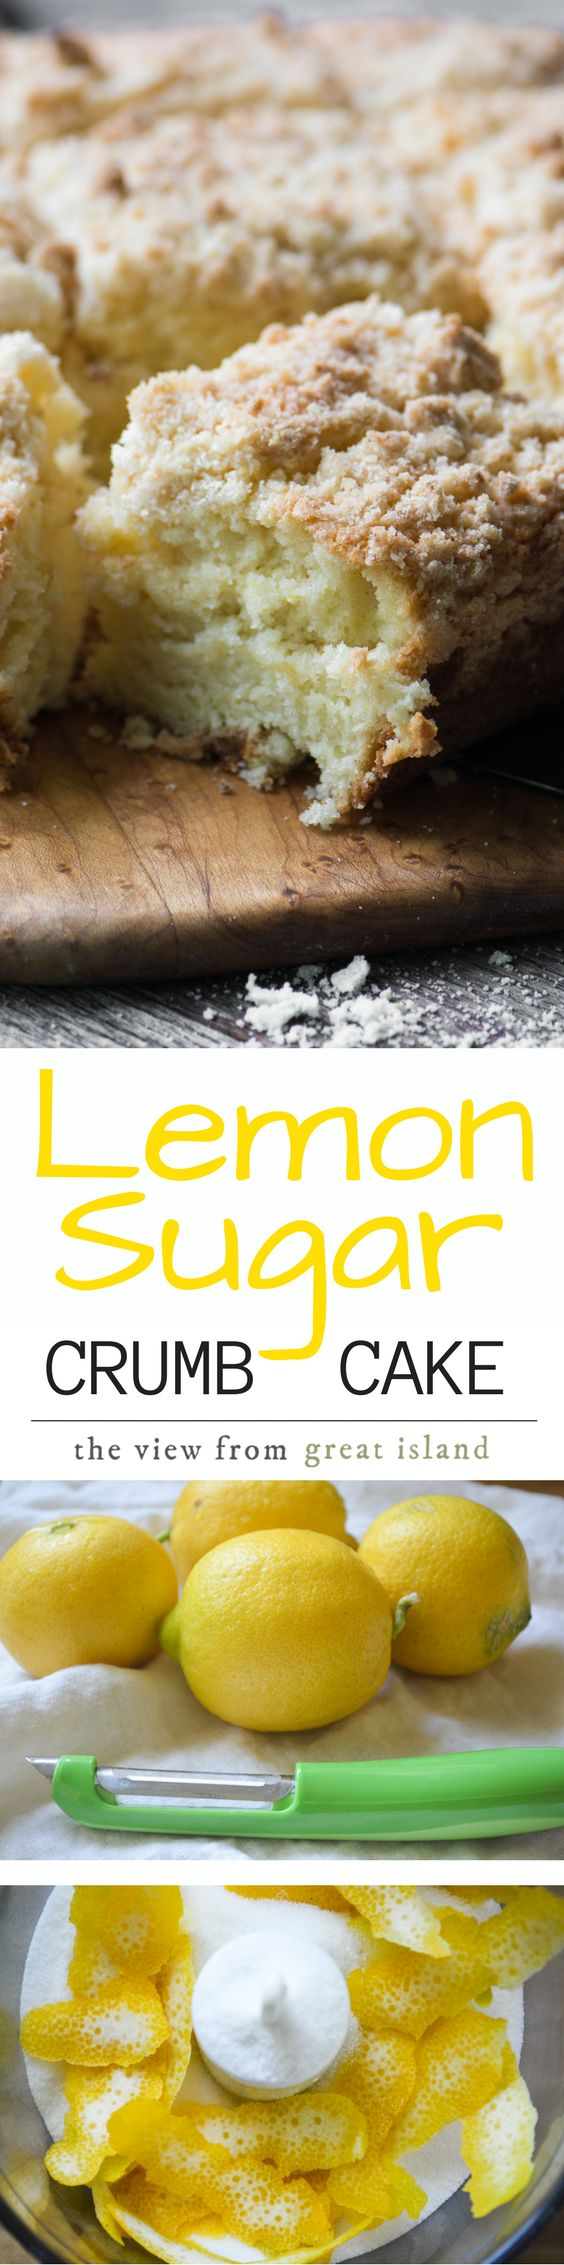 Lemon Sugar Crumb Cake is a mile high crumb cake with a delicate fresh lemon flavor, it's made with my special lemon infused sugar ~ an easy technique for punching up the citrus flavor in your favorite recipes! |breakfast | Mother's Day | coffee cake | pound cake | citrus